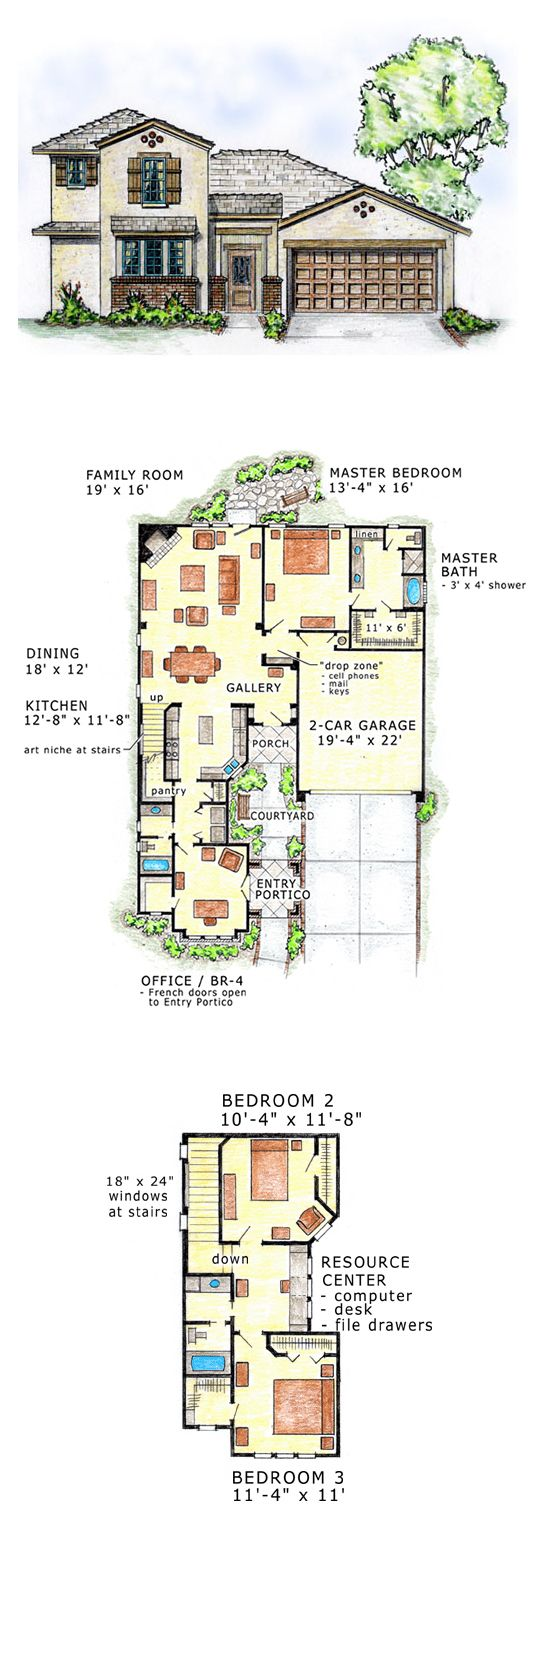 Southwest house plan 56527 total living area 2185 sq for Southwest house floor plans